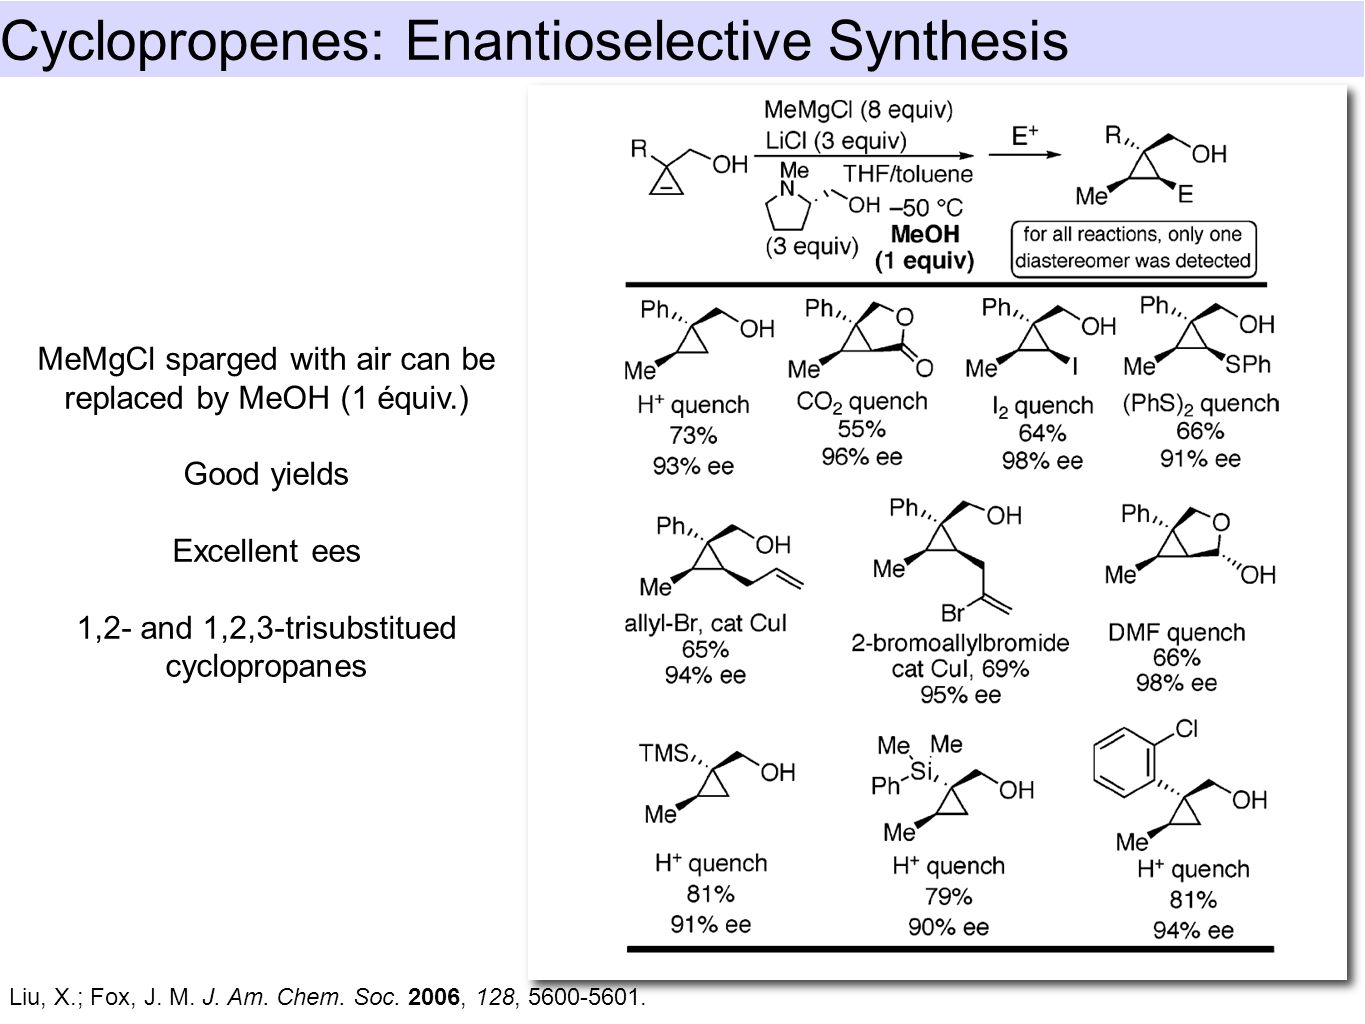 Cyclopropenes: Enantioselective Synthesis Liu, X.; Fox, J. M. J. Am. Chem. Soc. 2006, 128, 5600-5601. MeMgCl sparged with air can be replaced by MeOH